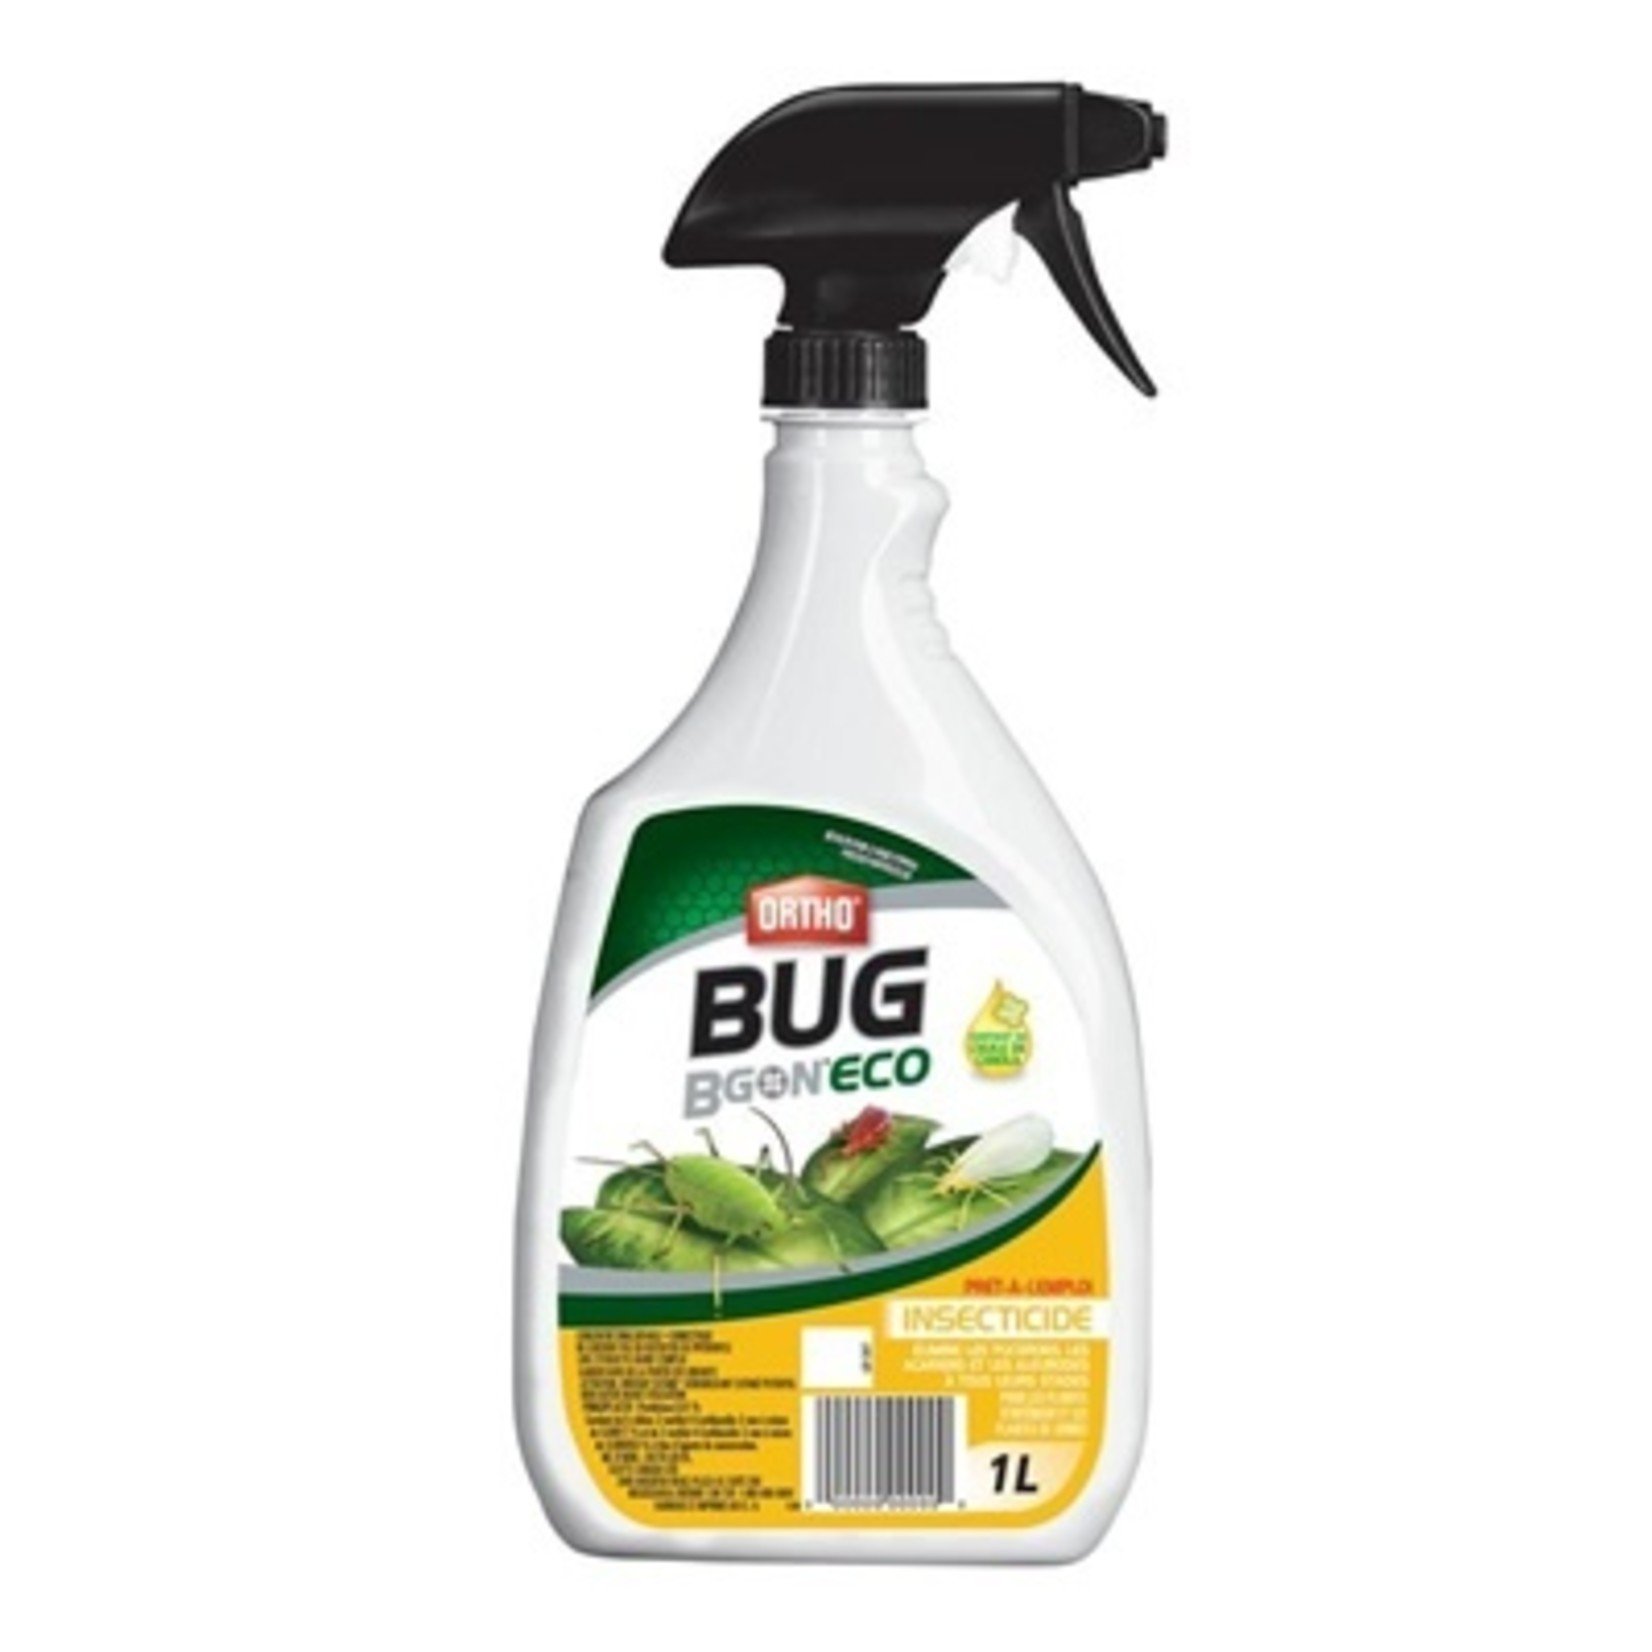 Ortho Insecticide Bug B Gon Eco 1L